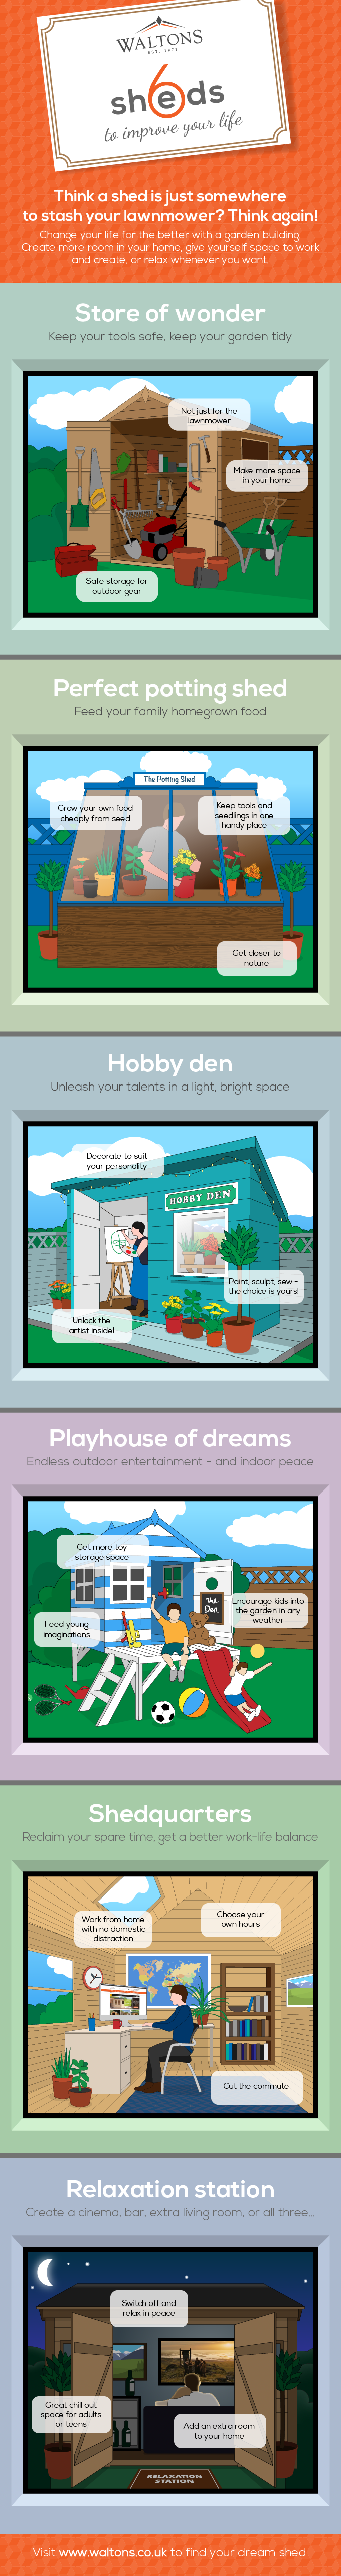 Shed Makeovers: 6 Life-Changing Shed Ideas - Infographic